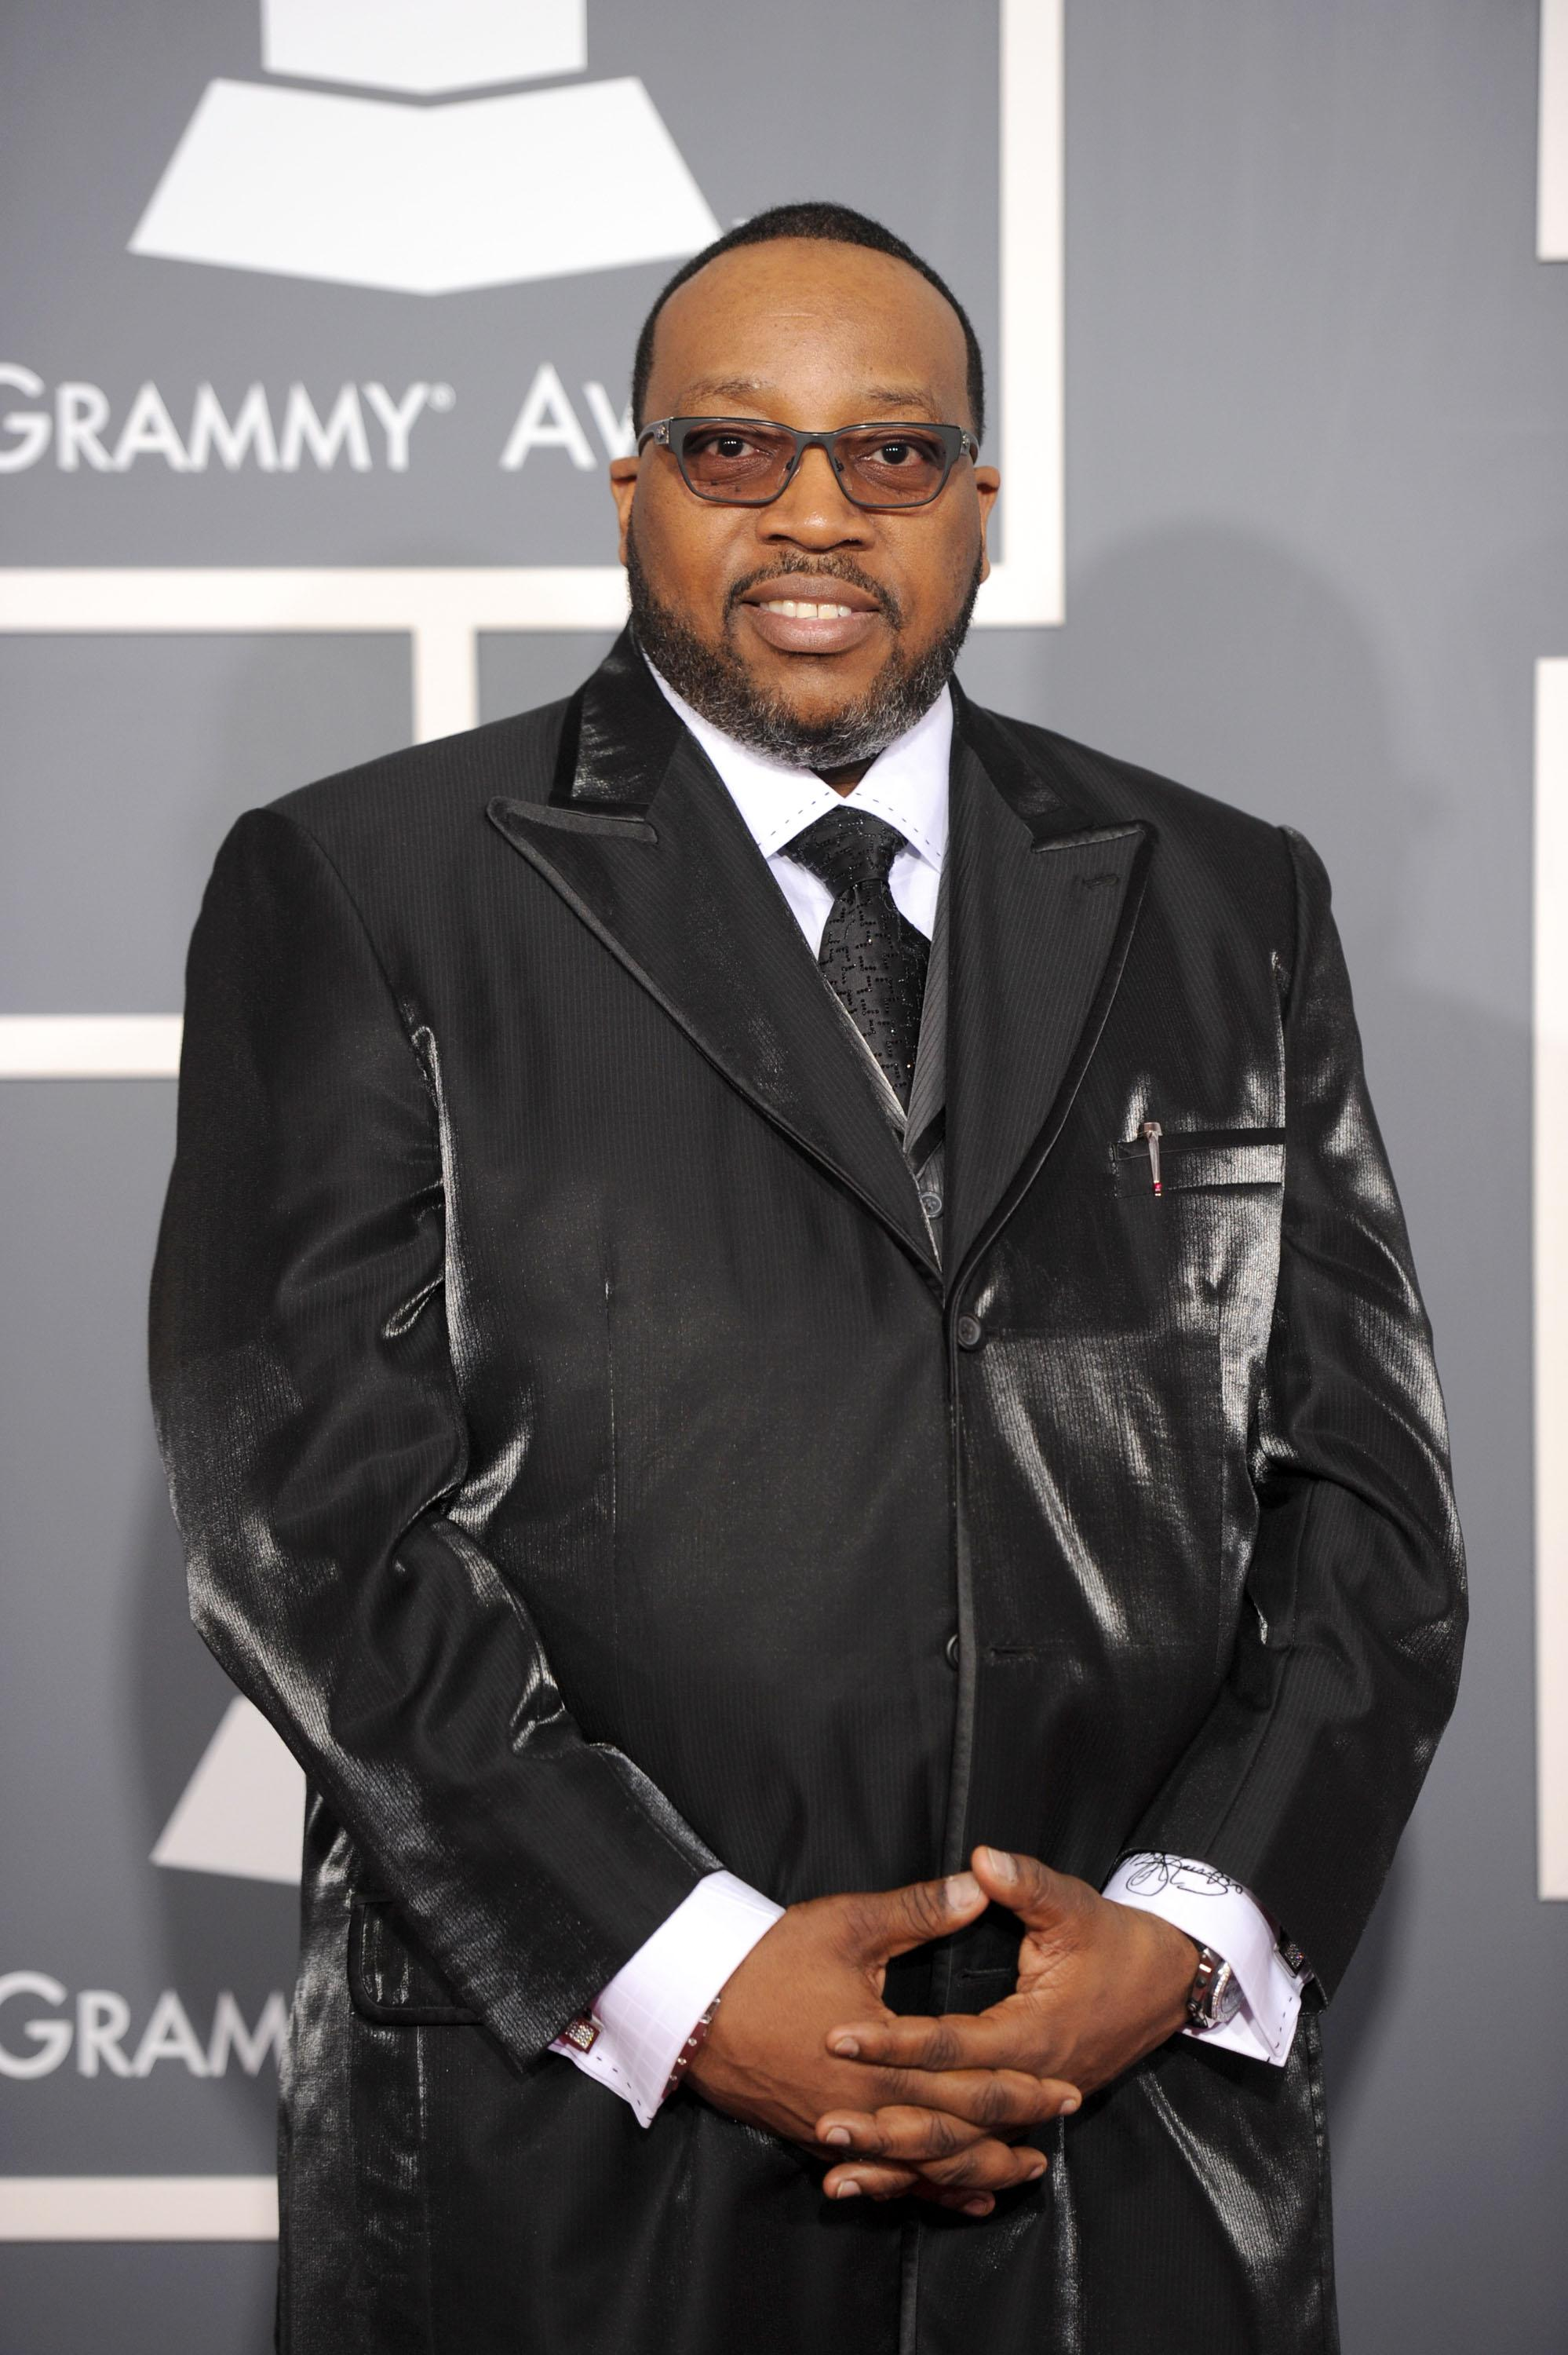 Marvin Sapp To Perform At NAN's Annual Triumph Awards, Sarah Jakes Roberts To Be Honored